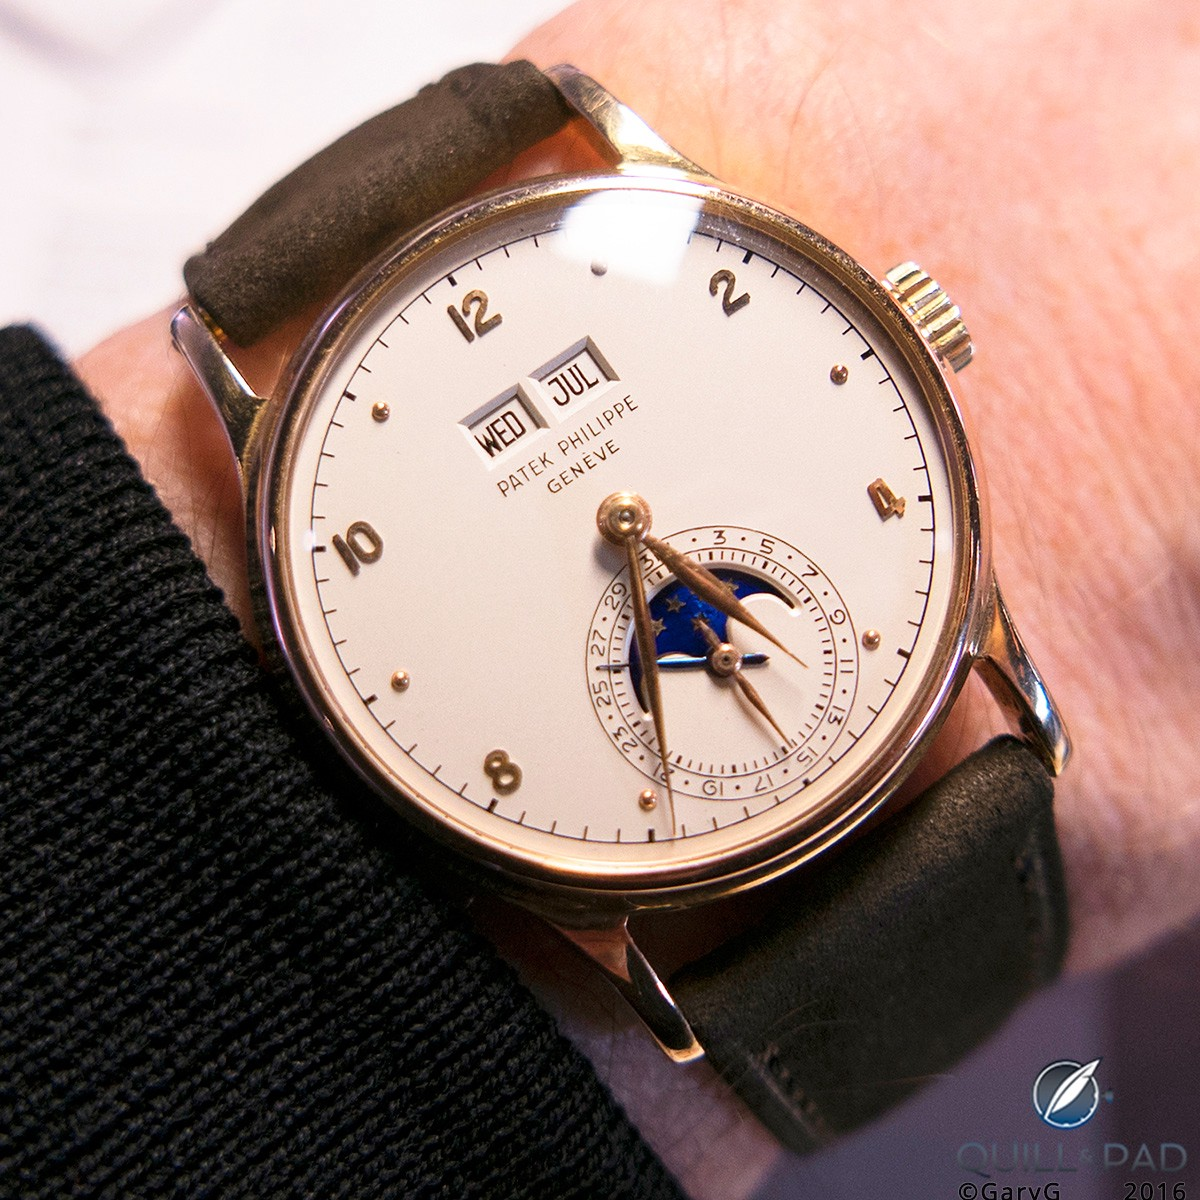 The author's second November auction purchase: Patek Philippe Reference 1526 in pink gold